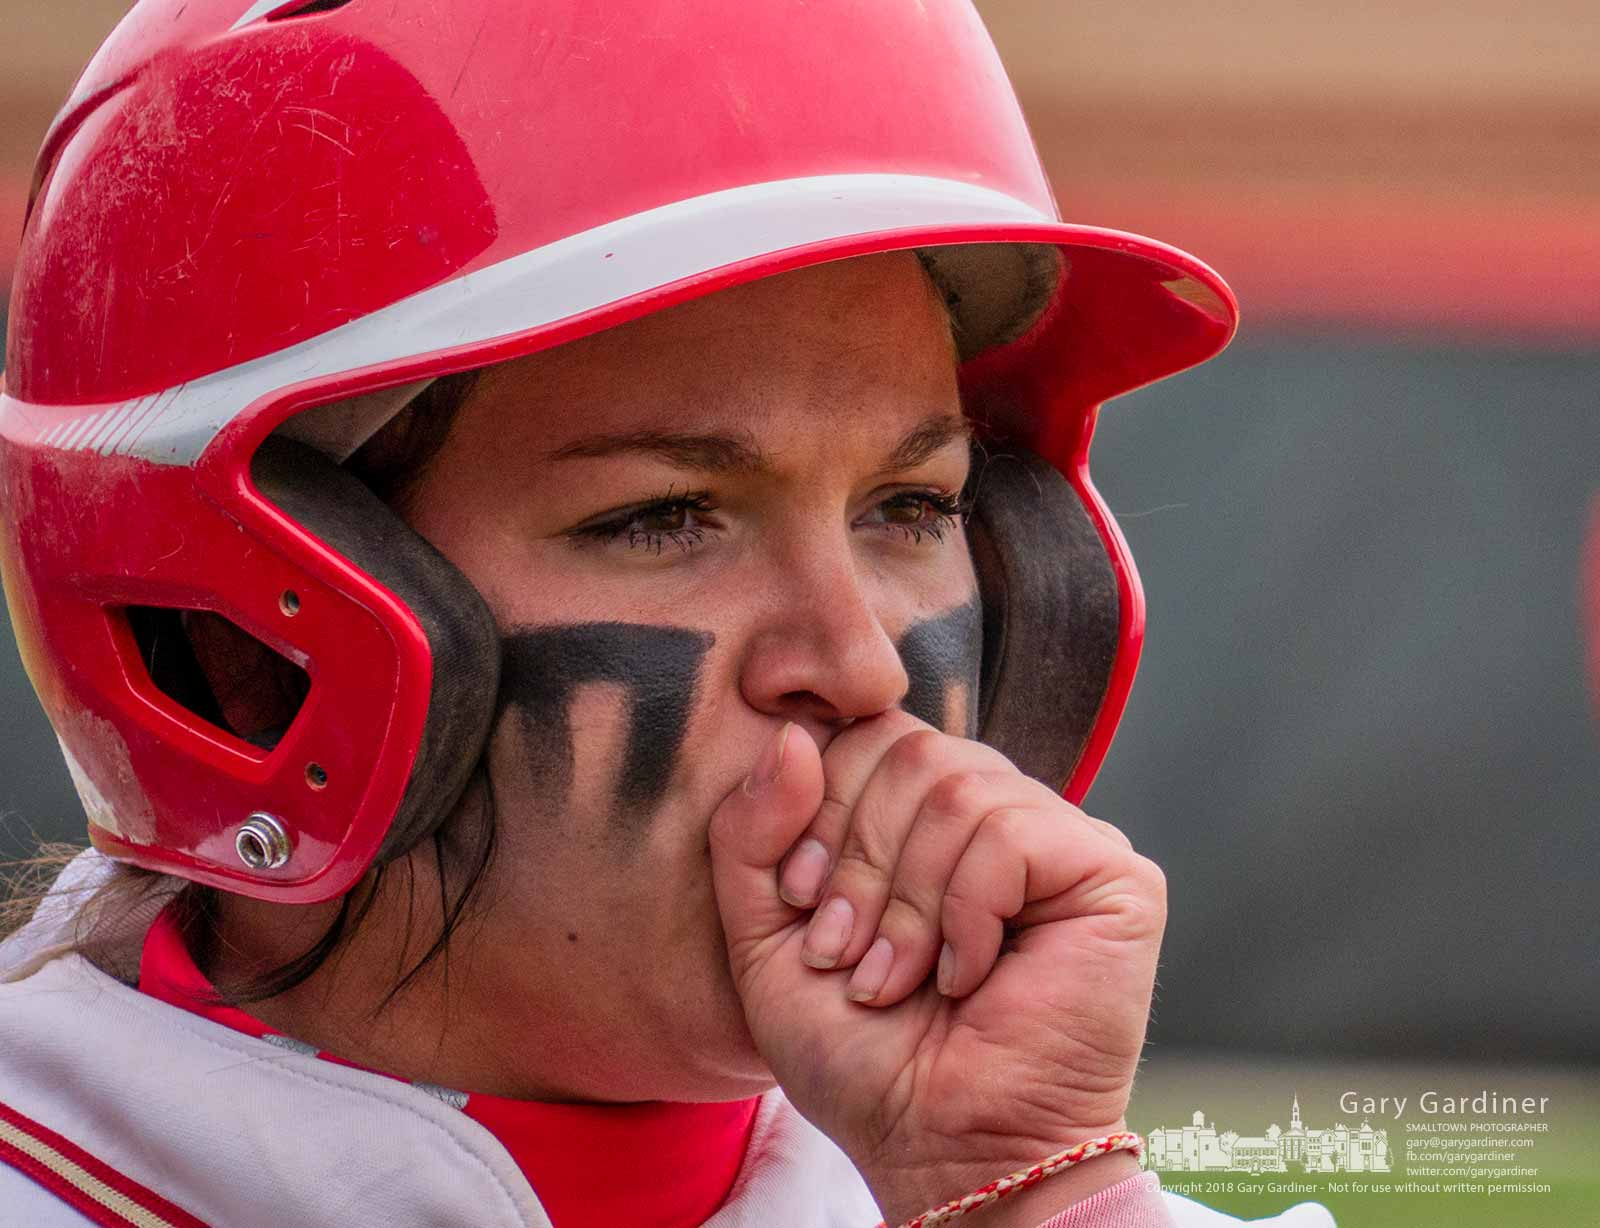 An Otterbein University softballer blowsinto her hand as she waits in the batters box in the second game of a doubleheader against Marietta Friday afternoon. My Final Photo for April6, 2018.